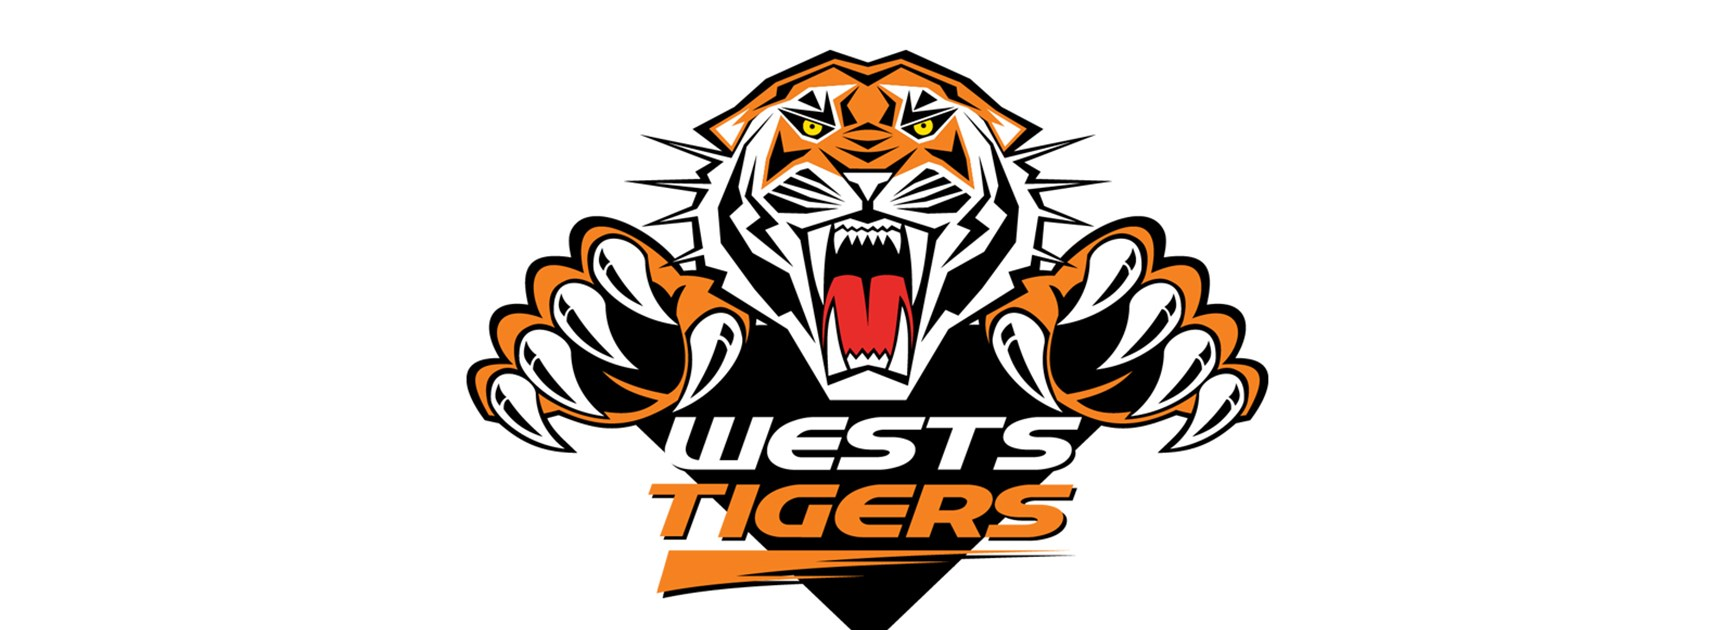 Wests Tigers logo.